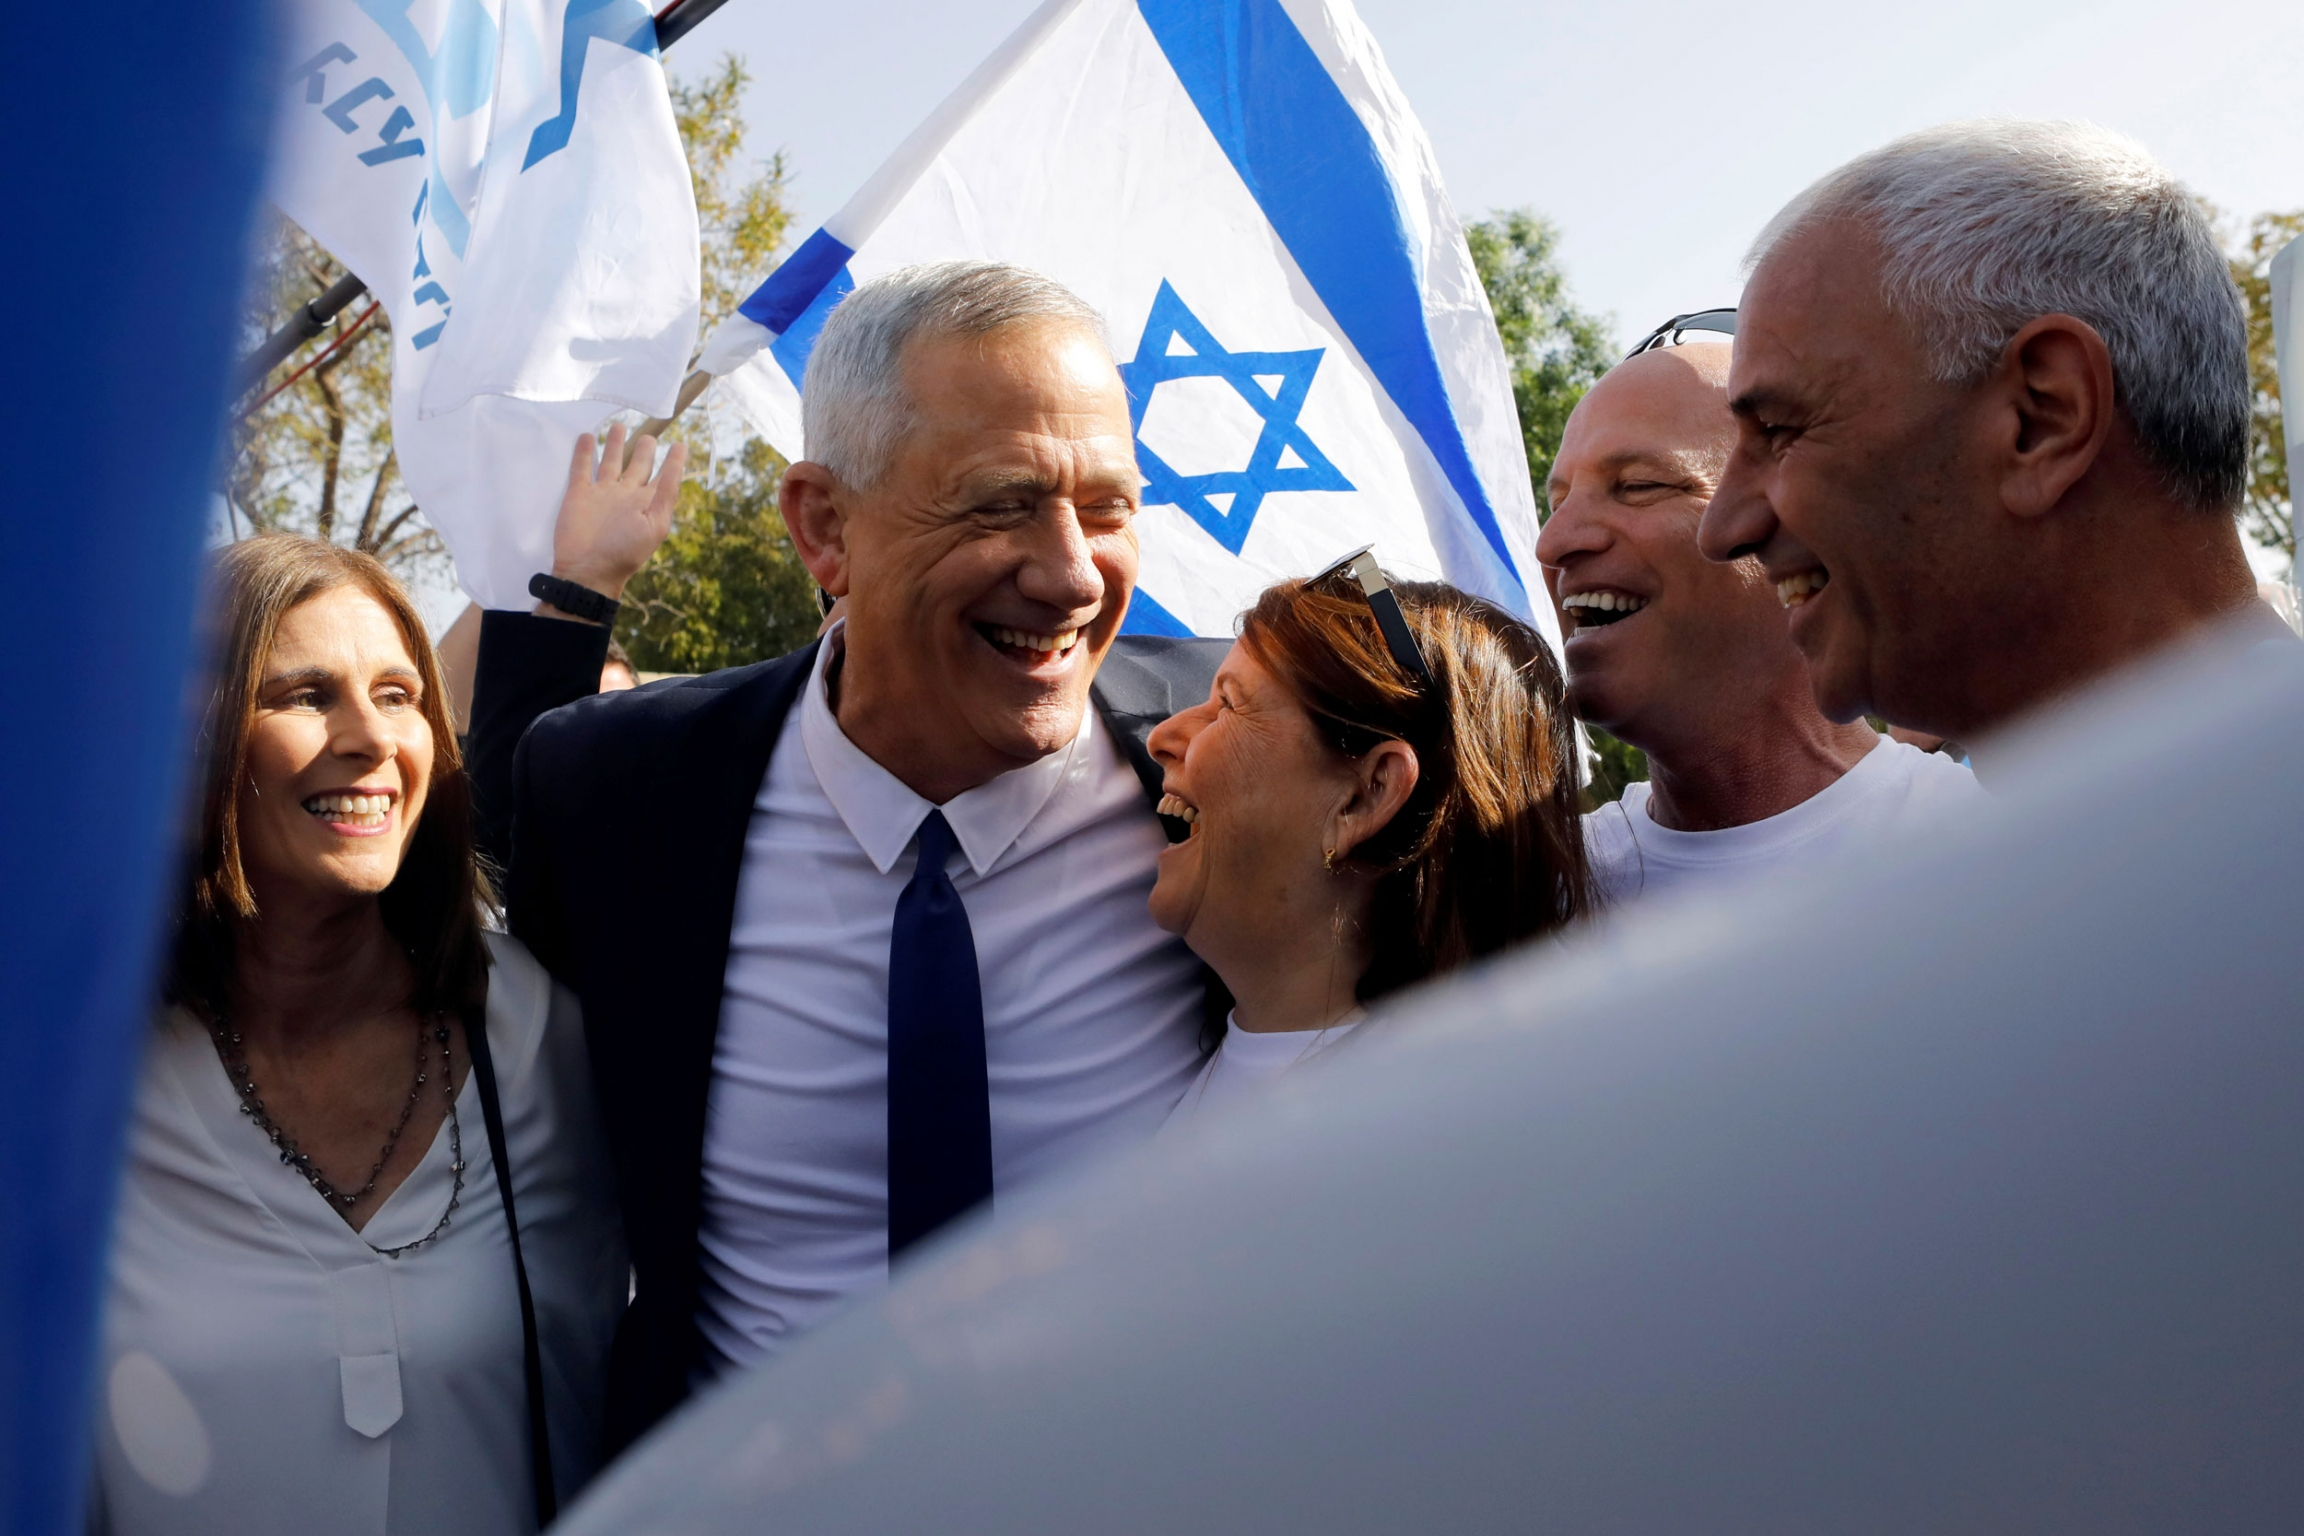 Israelis Go To Polls To Decide On Netanyahu's Fate